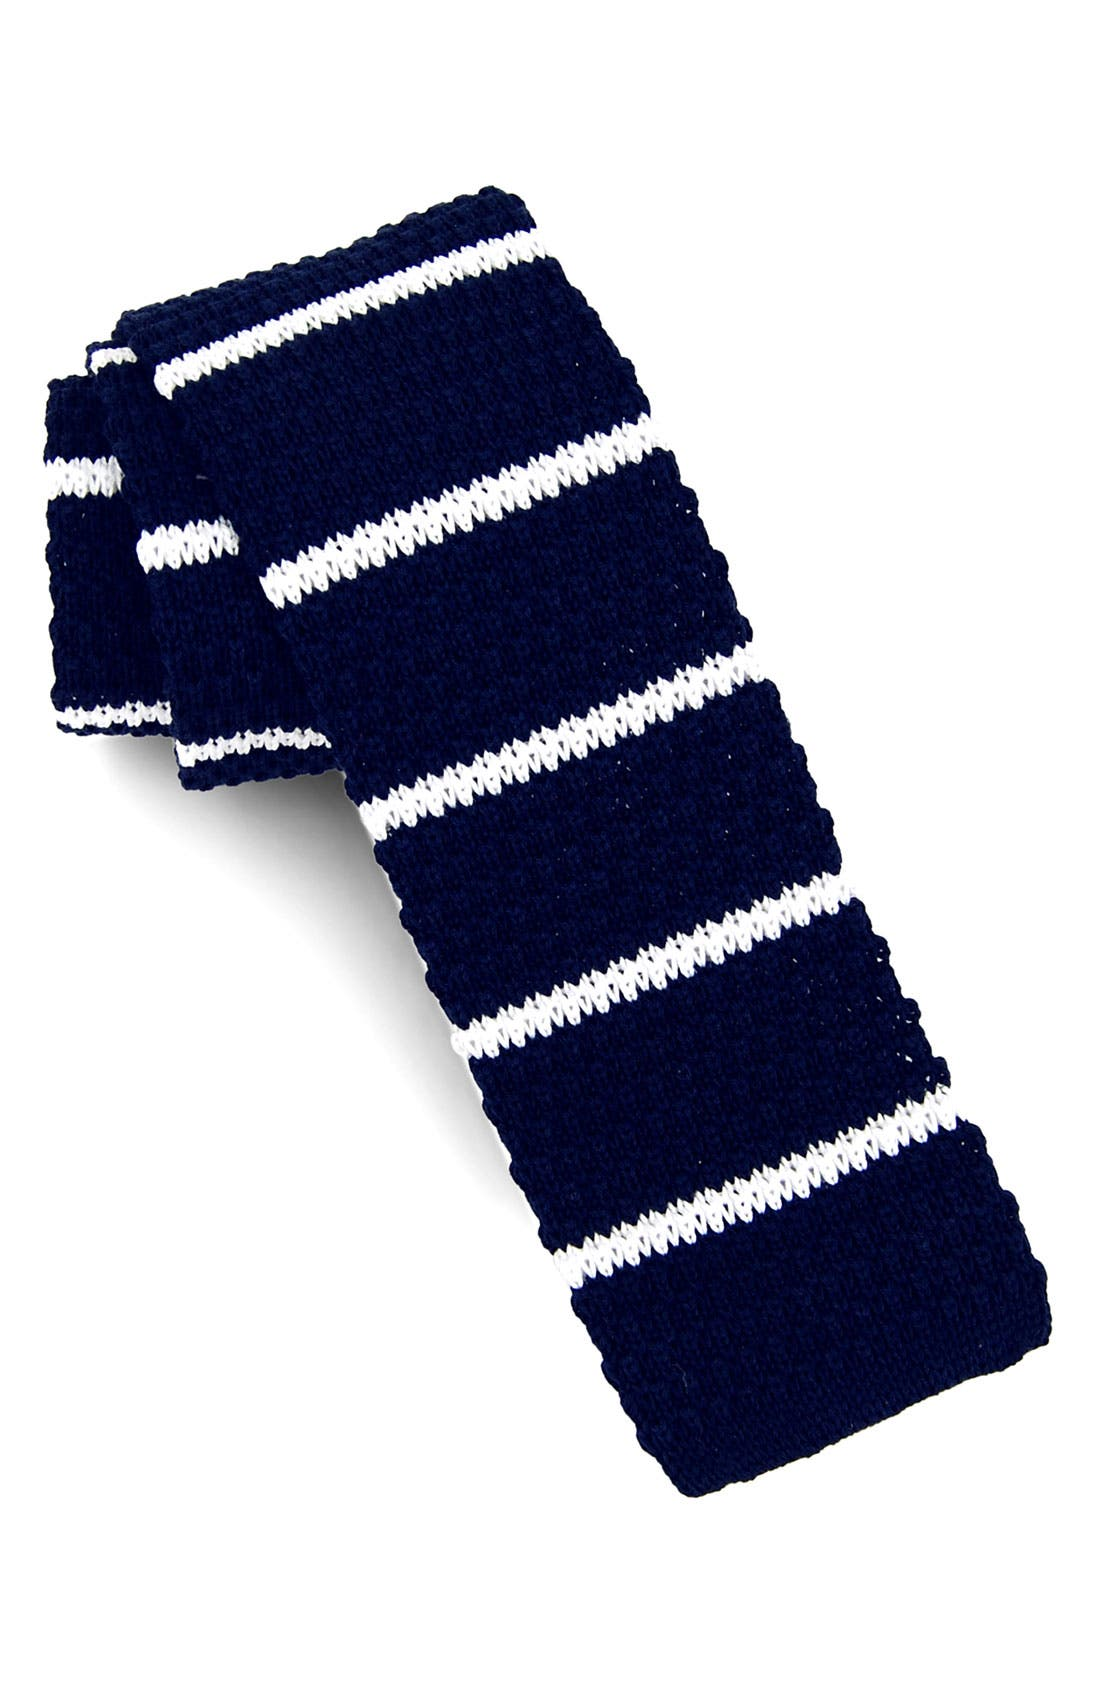 Alternate Image 1 Selected - 1901 Knit Cotton Tie